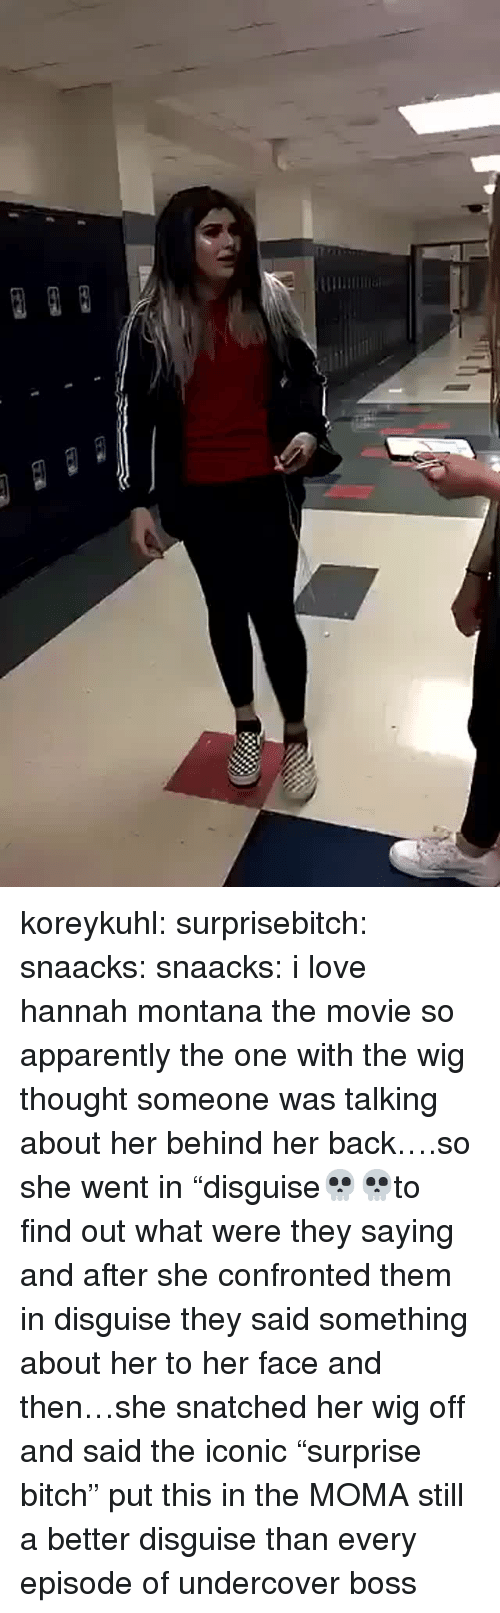 """Hannah Montana: koreykuhl: surprisebitch:  snaacks:  snaacks:  i love hannah montana the movie  so apparently the one with the wig thought someone was talking about her behind her back….so she went in """"disguise💀💀to find out what were they saying and after she confronted them in disguise they said something about her to her face and then…she snatched her wig off and said the iconic """"surprise bitch""""  put this in the MOMA  still a better disguise than every episode of undercover boss"""